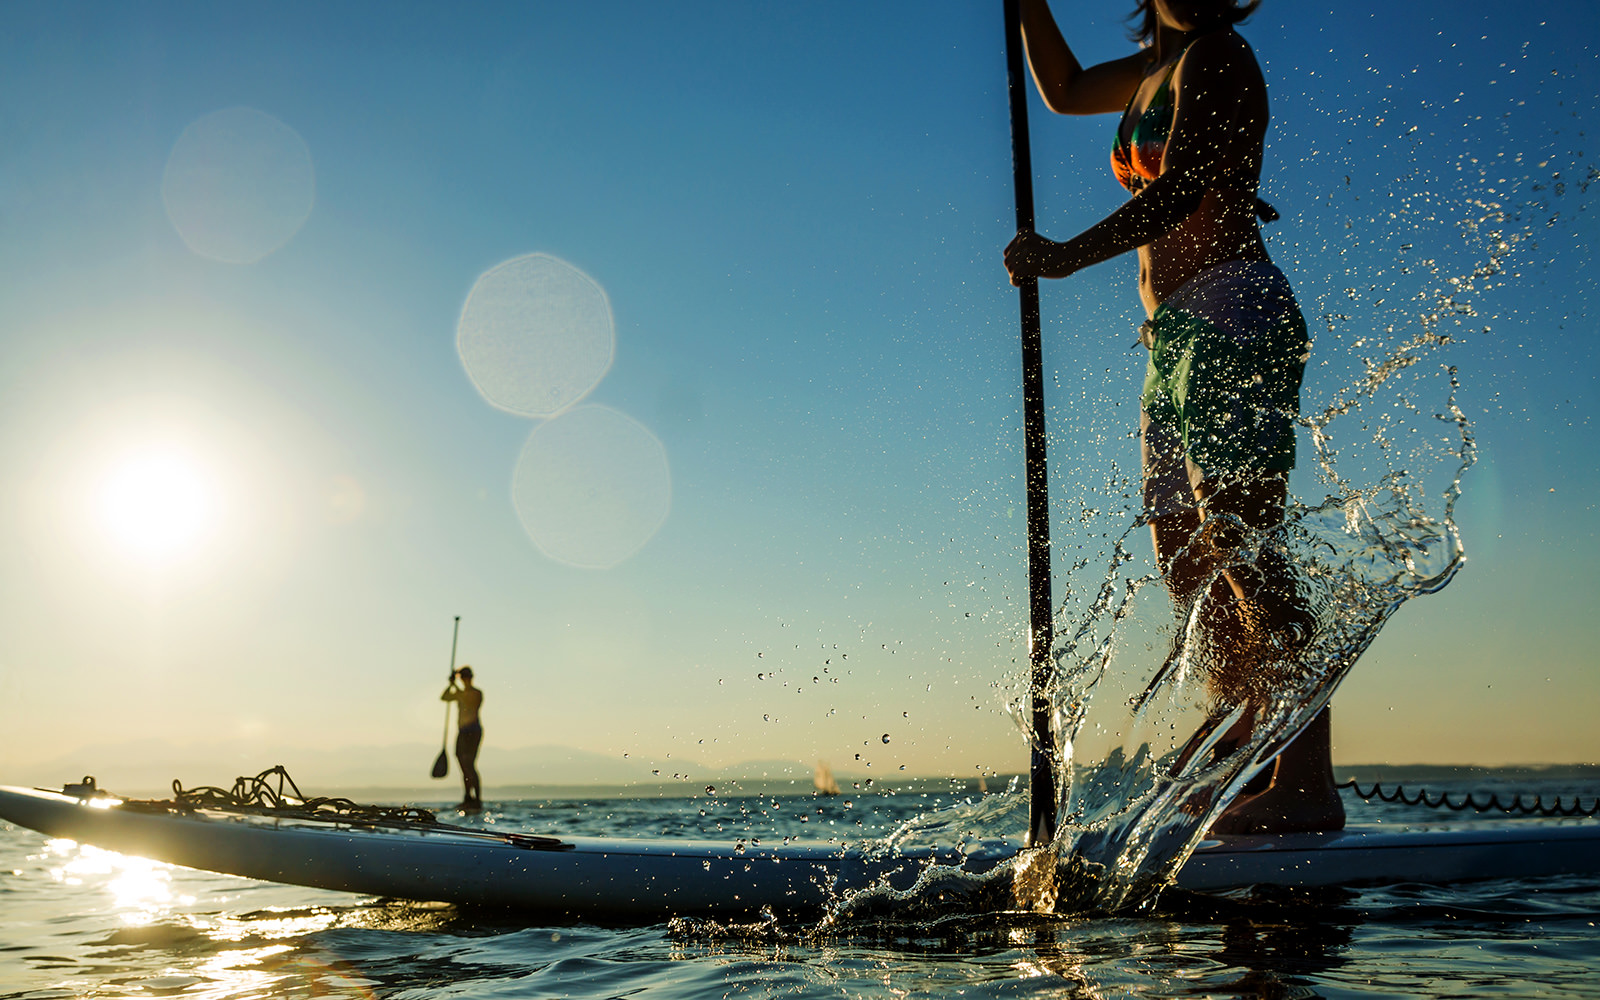 Stand-Up Paddleboard Rentals (SUP)